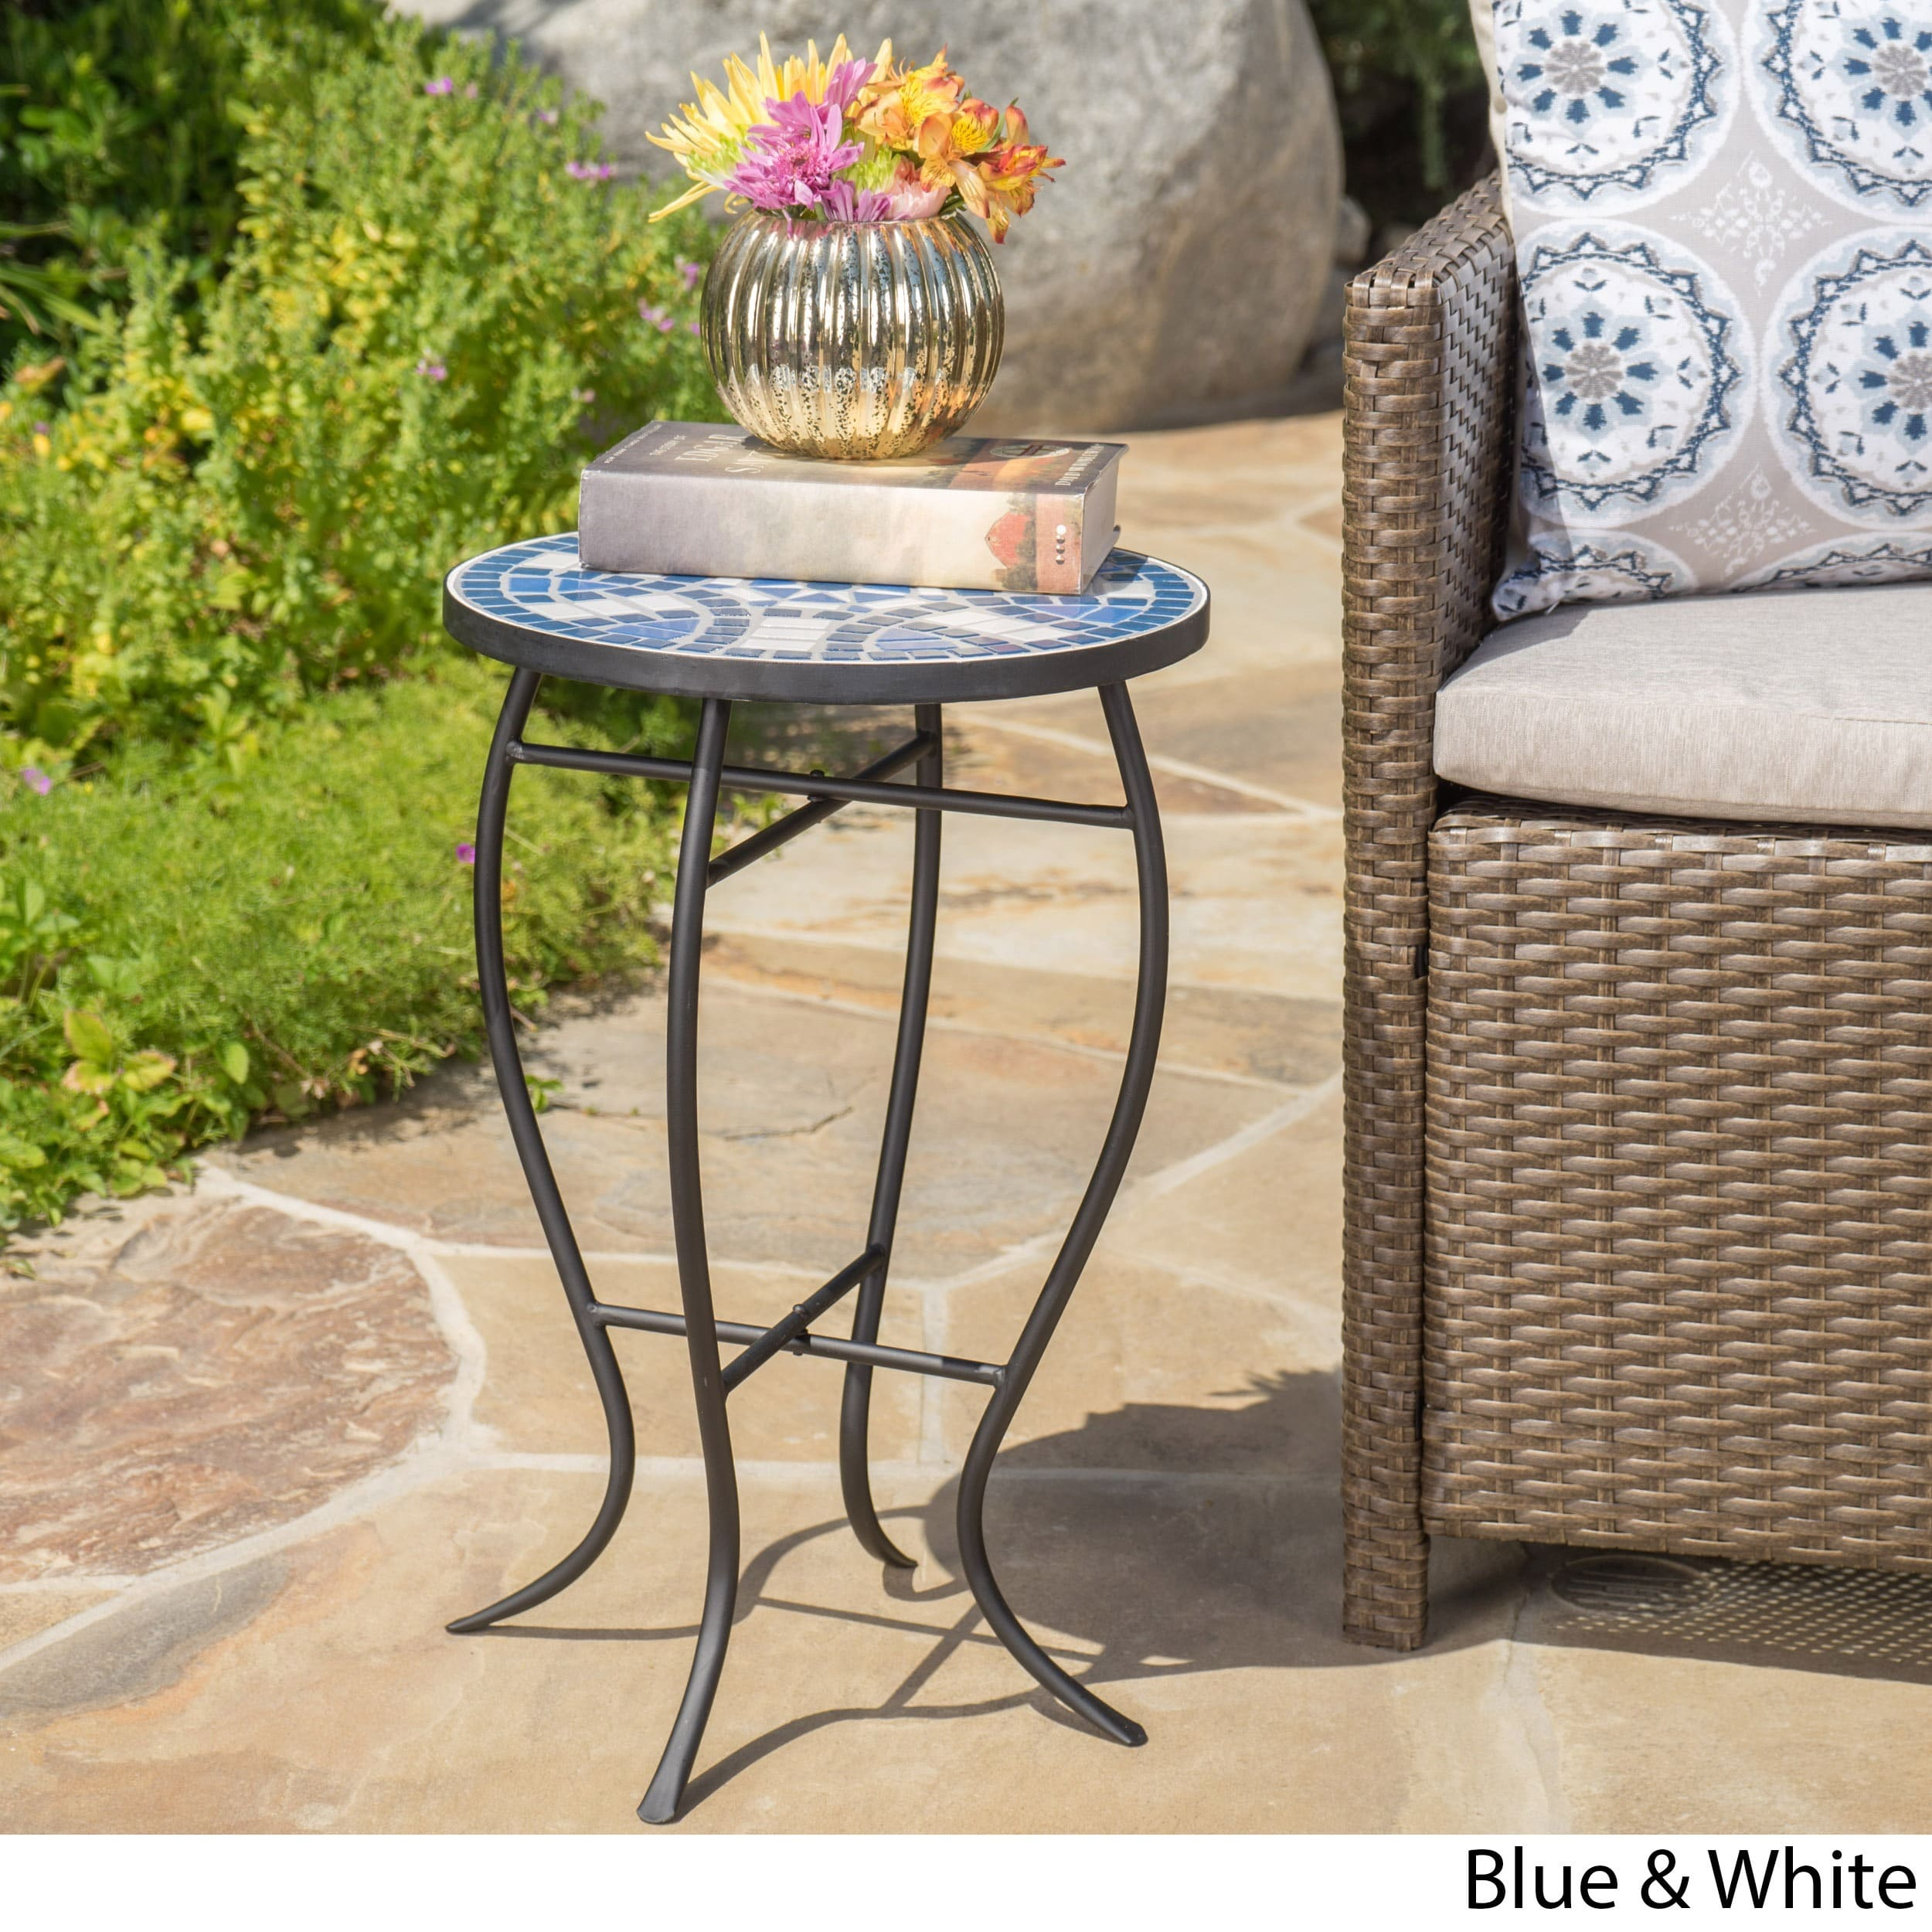 han outdoor round tile side table christopher knight home wrought iron patio accent free shipping orders over white end retro designer chairs blue and asian lamps orange bathroom